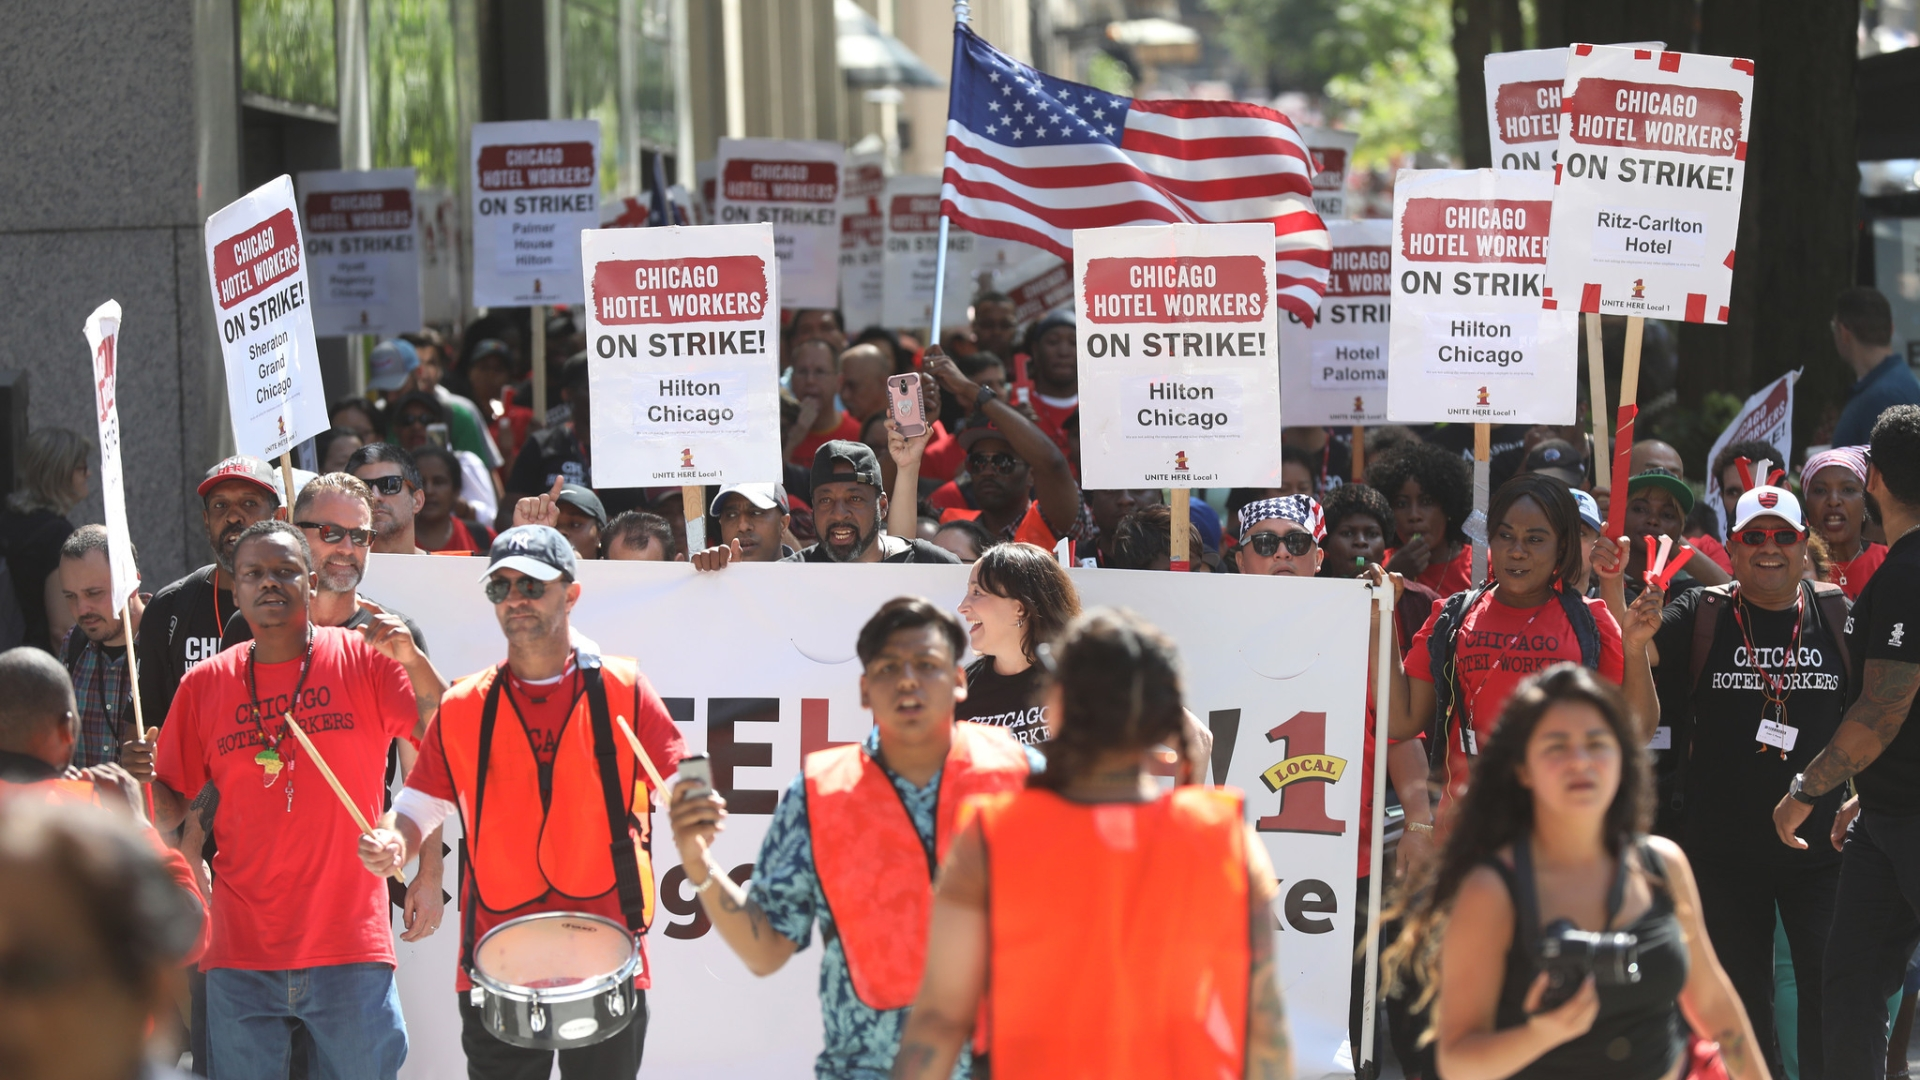 One week into Chicago hotel worker strike, talks continue but no end